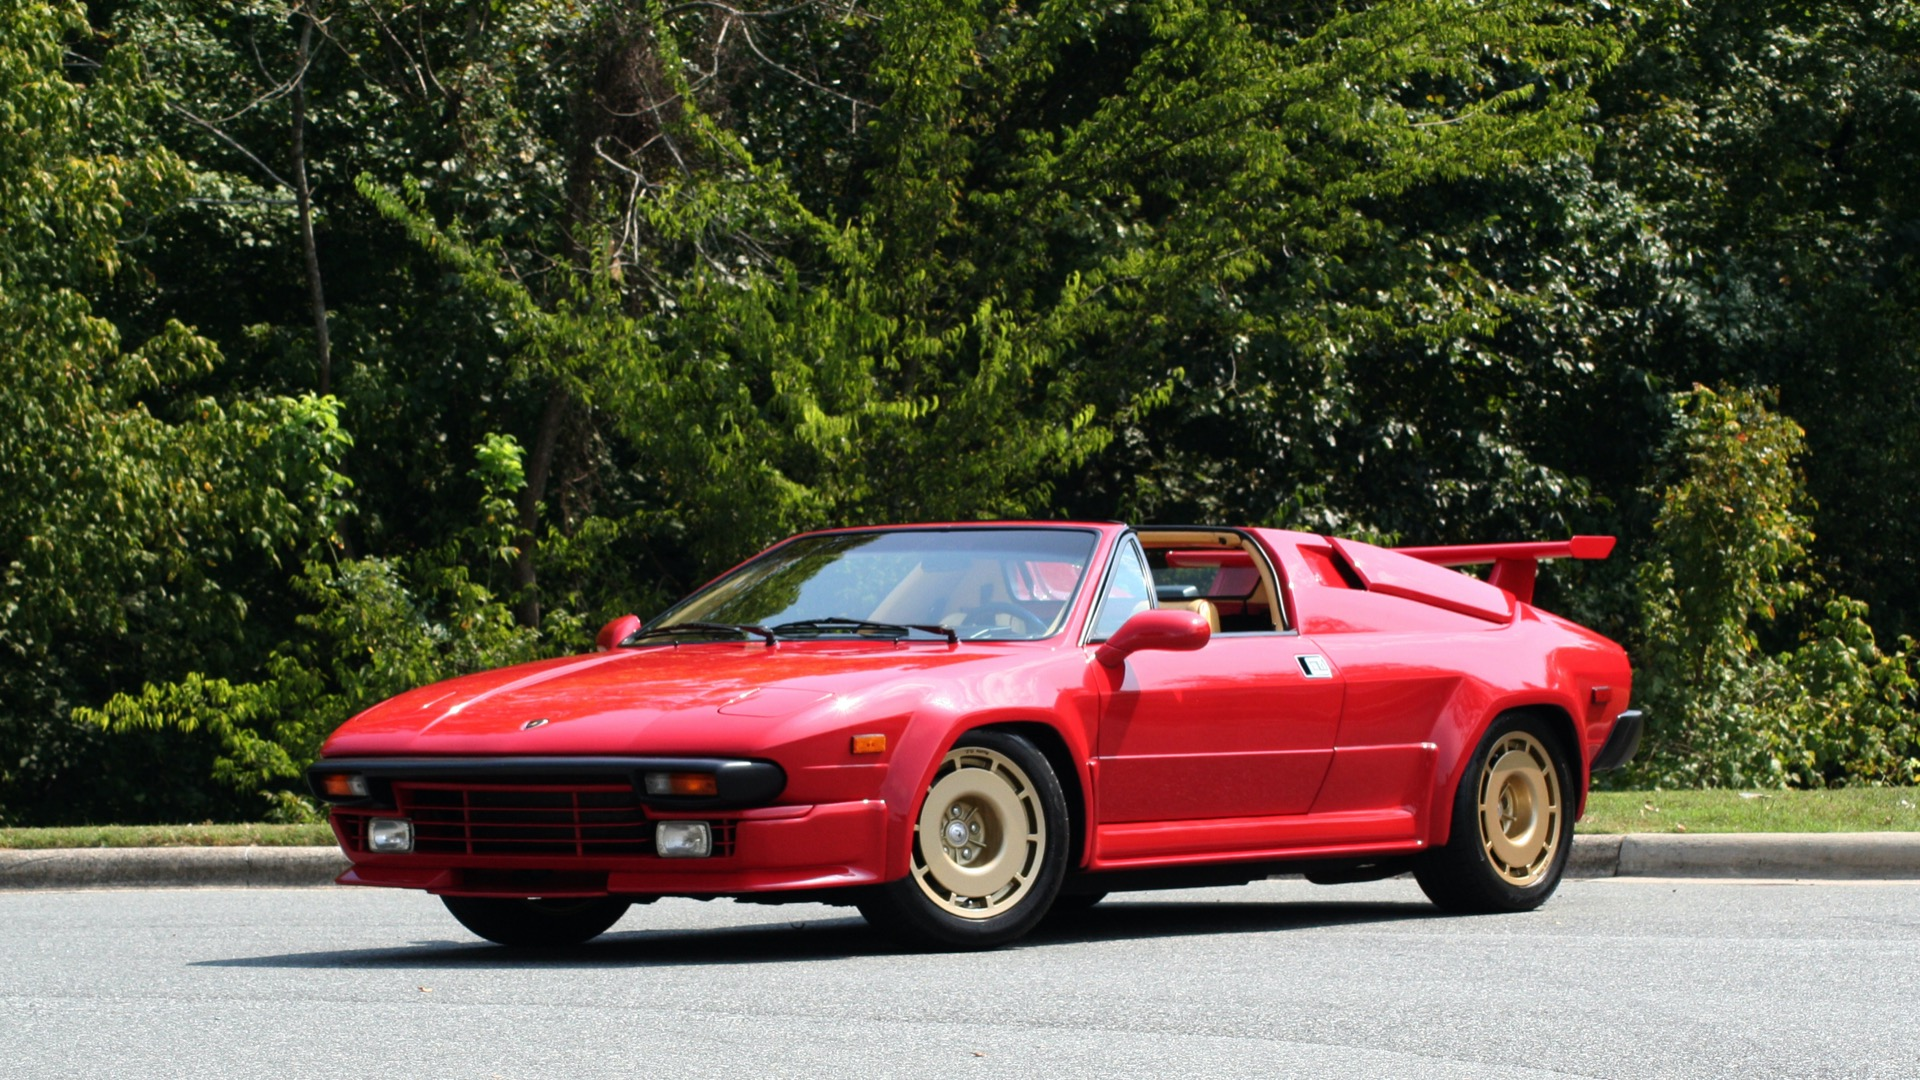 Used 1988 Lamborghini Jalpa 3.5 / 5-Speed Man / Low Miles / Excellent Condition for sale $108,995 at Formula Imports in Charlotte NC 28227 2